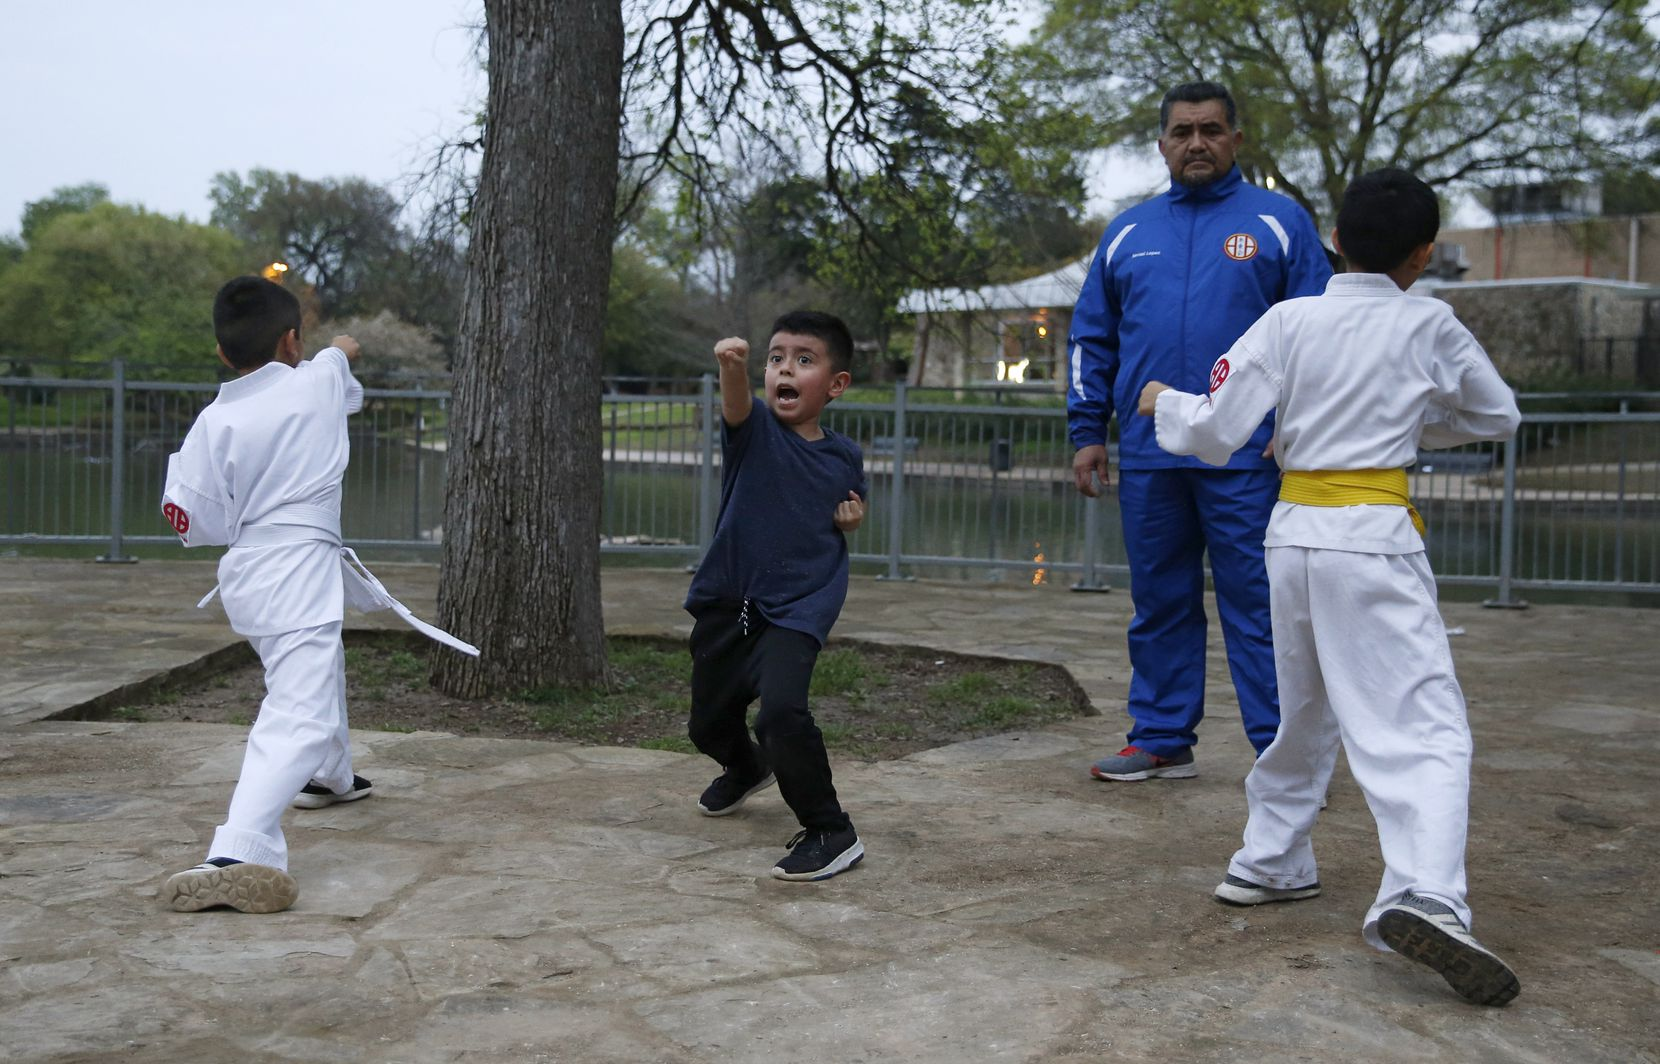 Leonardo Garcia, 6, practices his punches along with Gaviel Espinosa, 7, (left) and Alexander Valverde, 12, as Sensei Miguel Lopez of Shito Ryu Dallas watches during a no-contact karate class at Kidd Springs Park in Dallas.